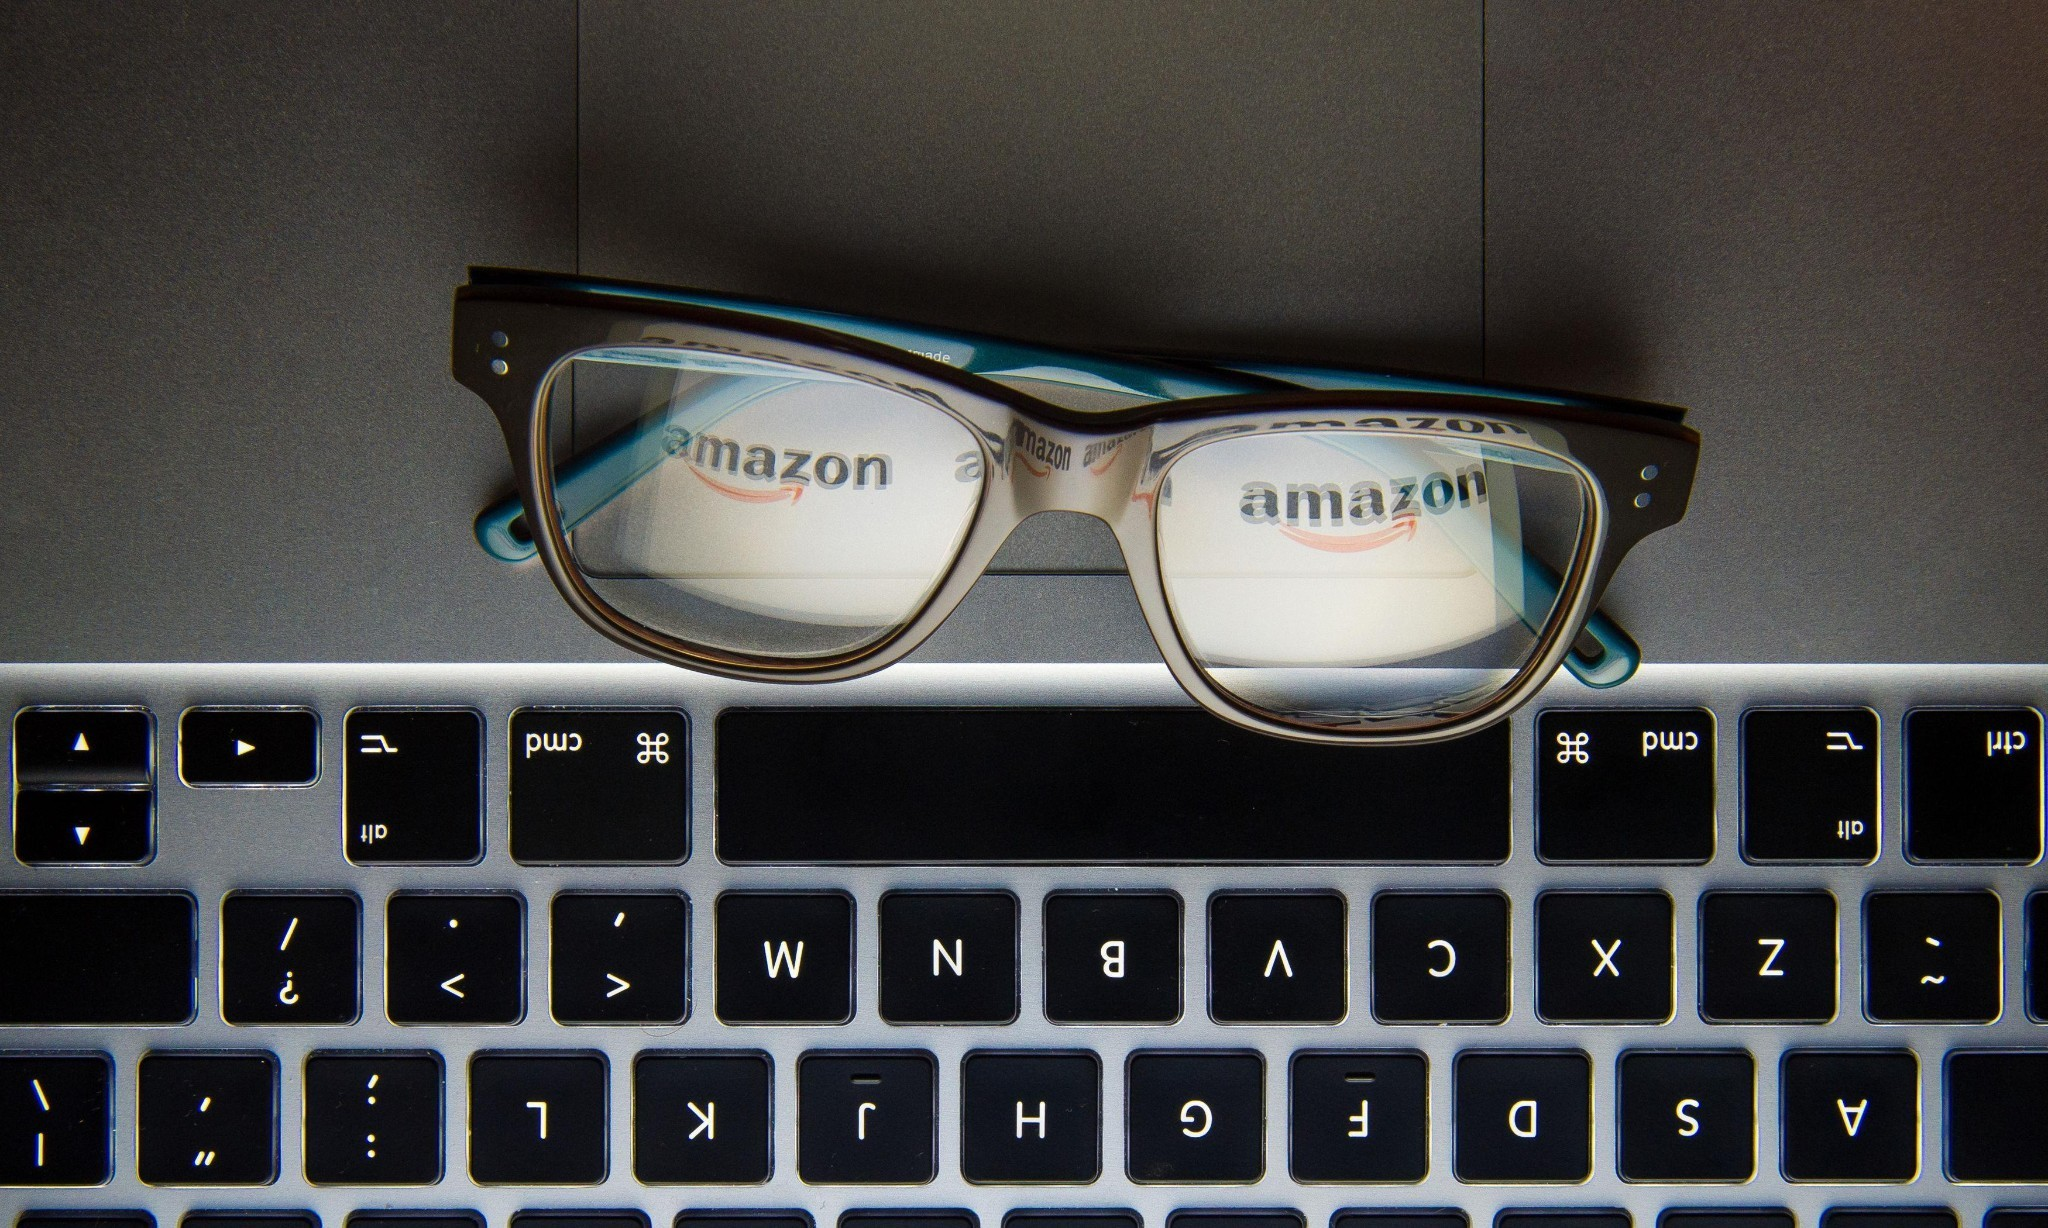 Typo blamed for Amazon's internet-crippling outage